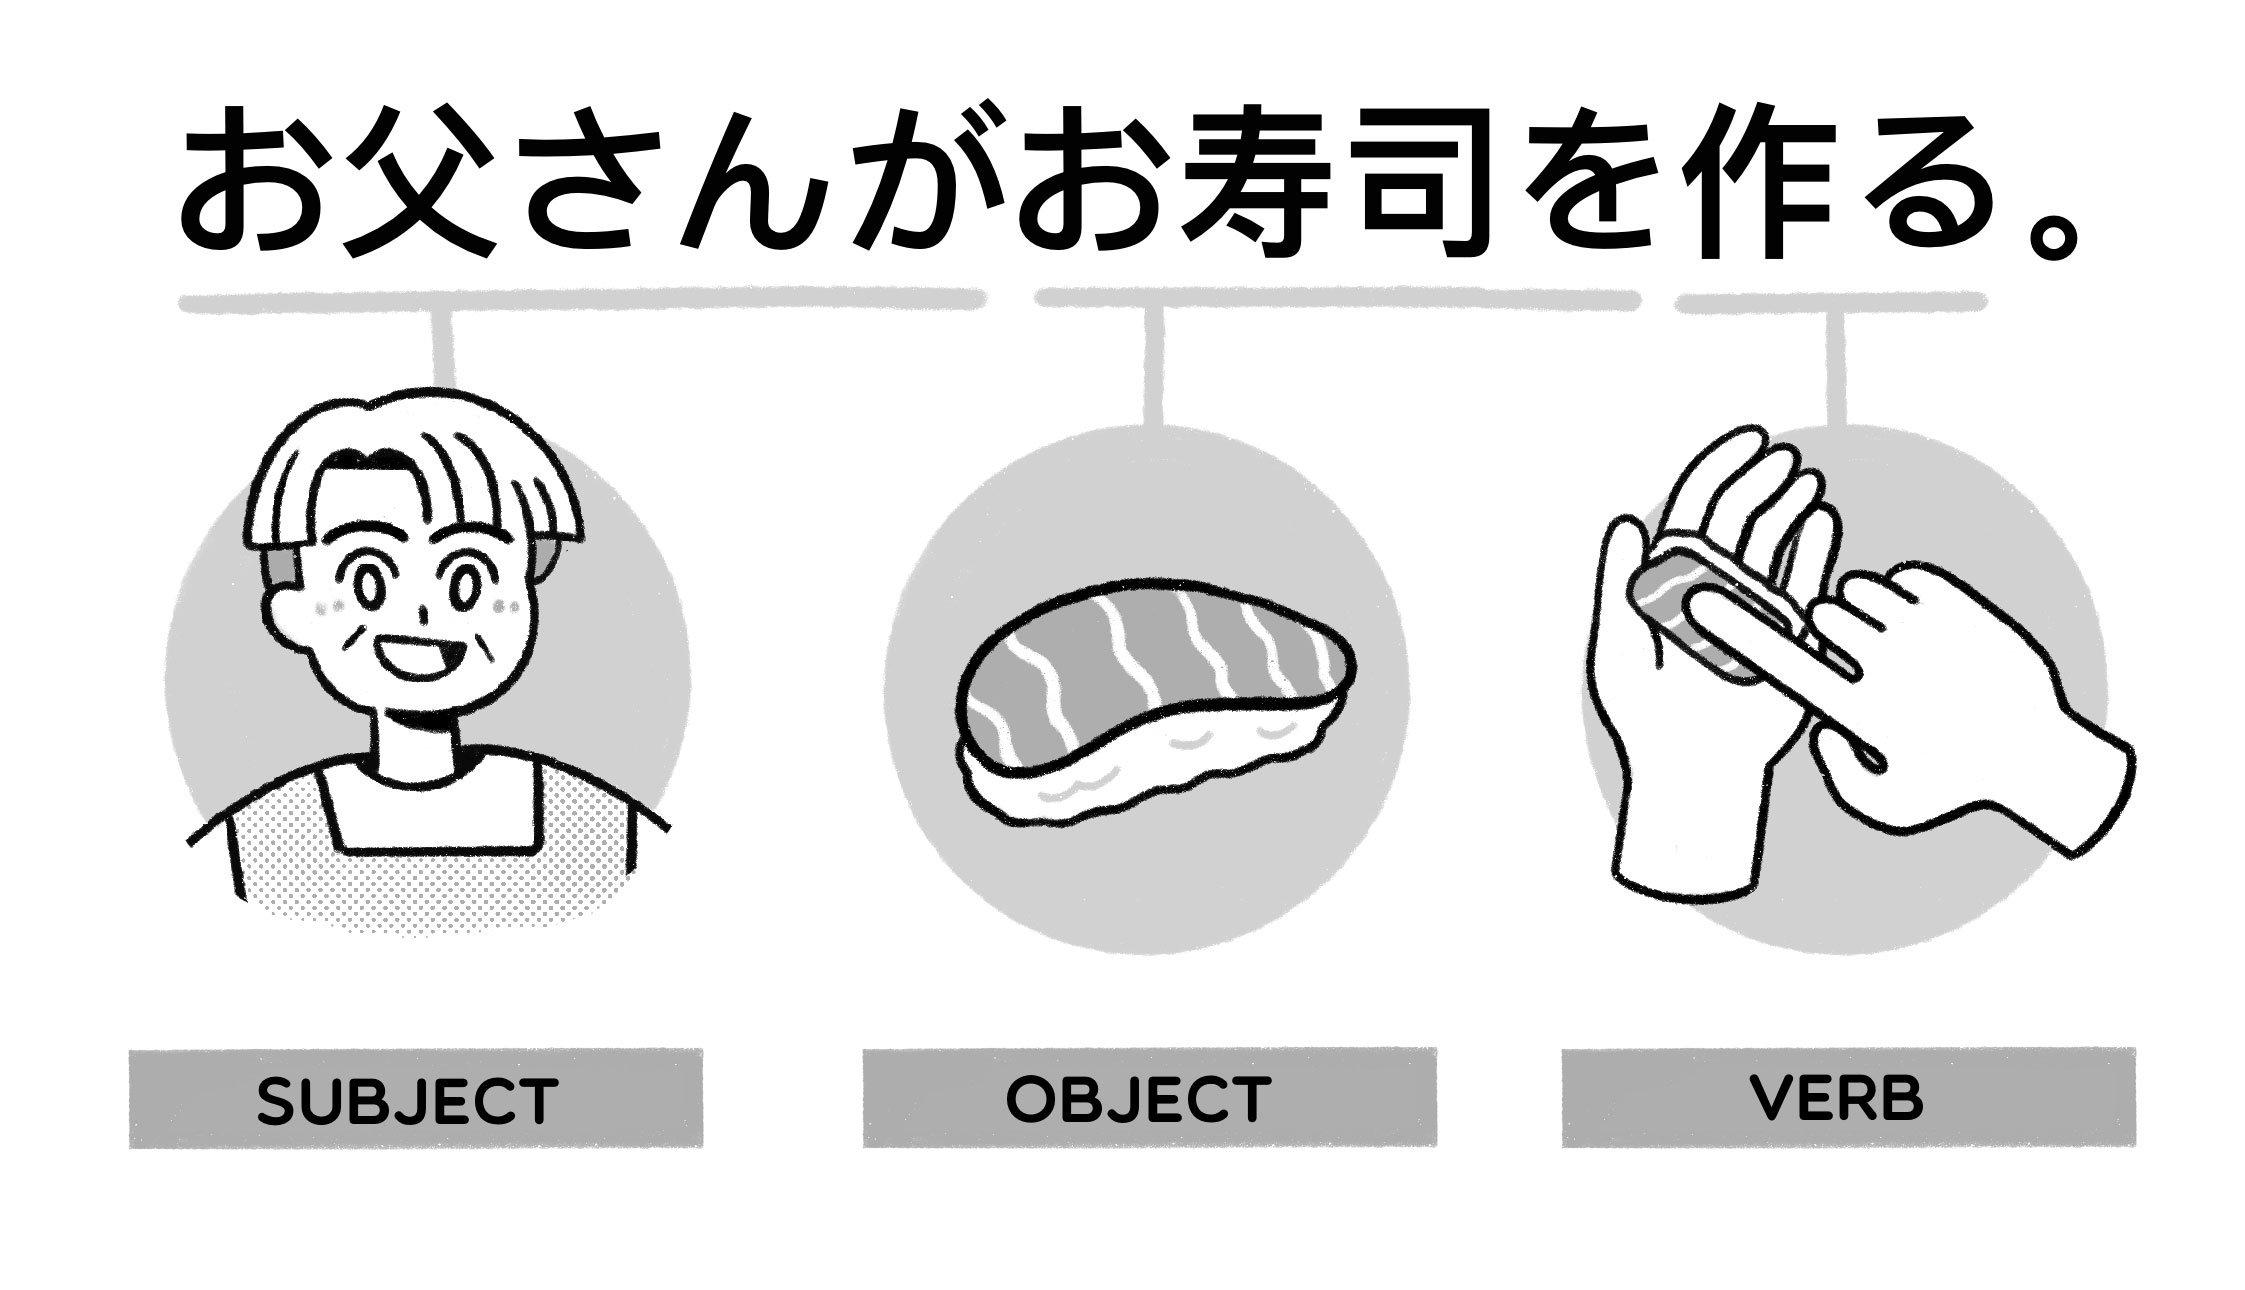 a subject, an object, a verb for a Japanese sentence お父さんが寿司を作る